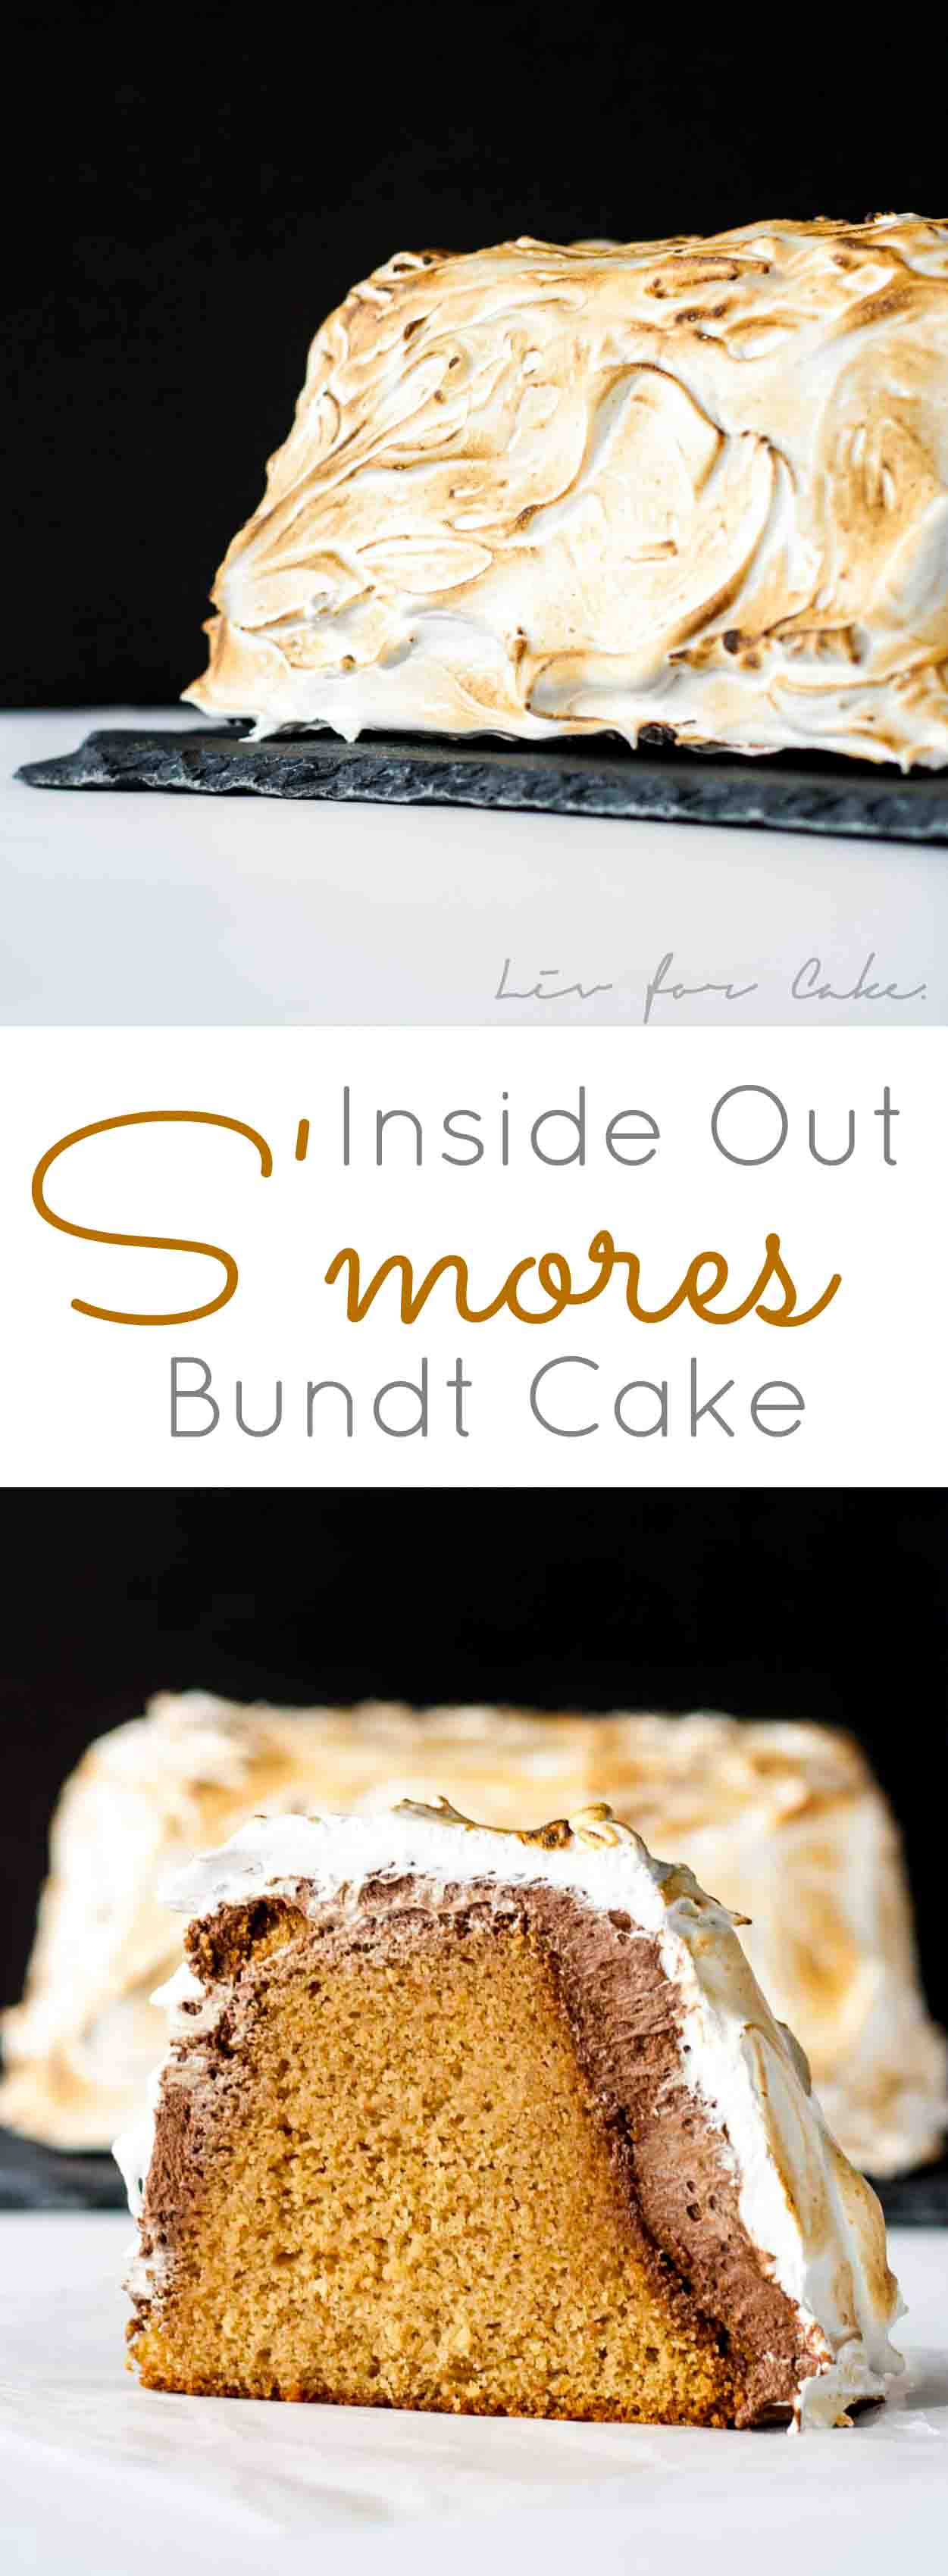 S'mores Bundt Cake - A delicious graham cracker Bundt cake covered in a whipped milk chocolate ganache and toasted marshmallow fluff. | livforcake.com